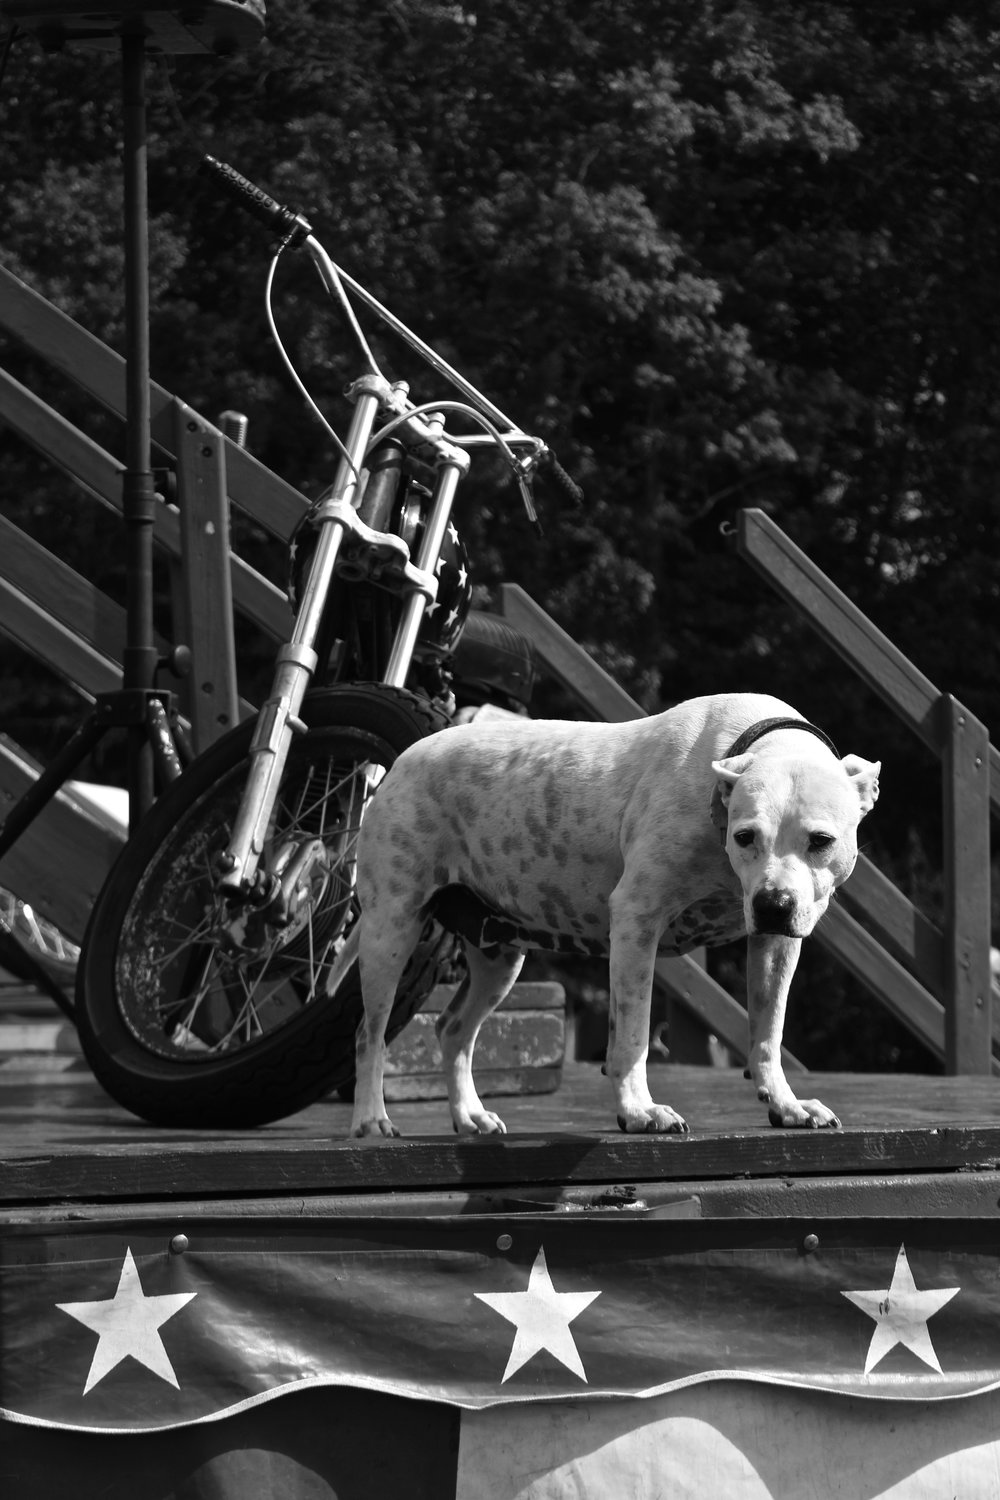 Wall of Death dog, Barber Festival, Birmingham, AL.